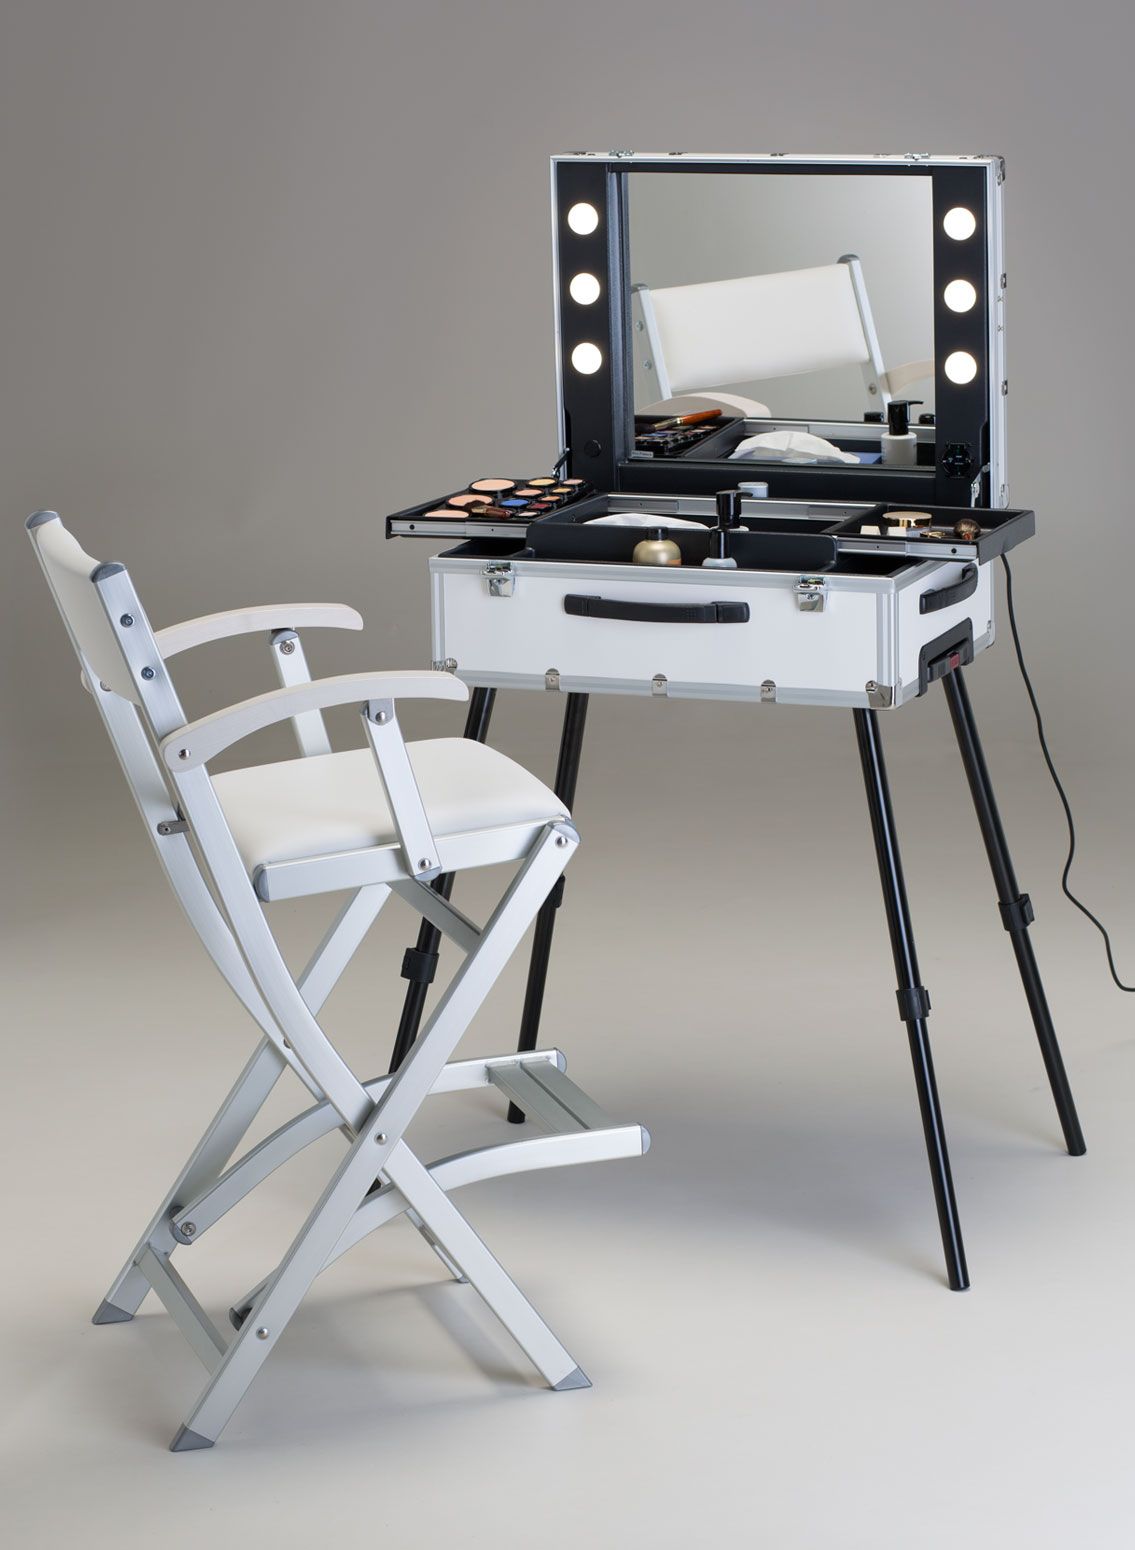 Frozenwhite makeup station Cantoni with trolley makeup case with lights and makeup chair foldable